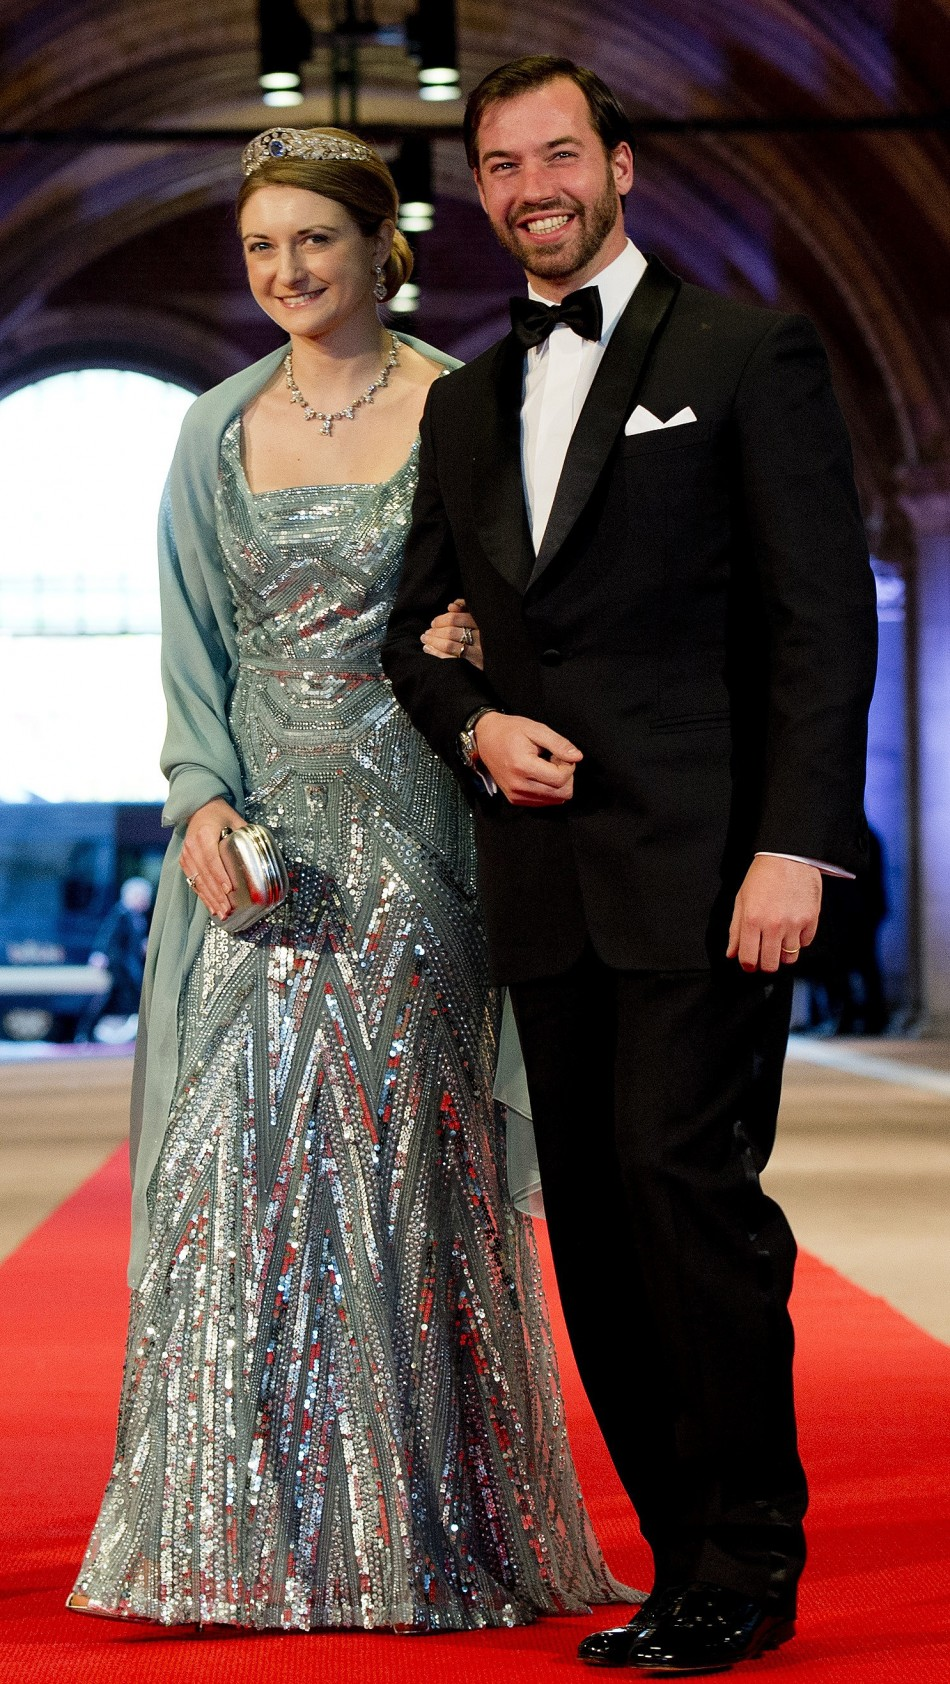 Luxembourgs Hereditary Grand Duke Guillaume R and his wife Princess Stephanie arrive at a gala dinner organised on the eve of the abdication of Queen Beatrix of the Netherlands and the inauguration of her successor King Willem-Alexander at the Rij